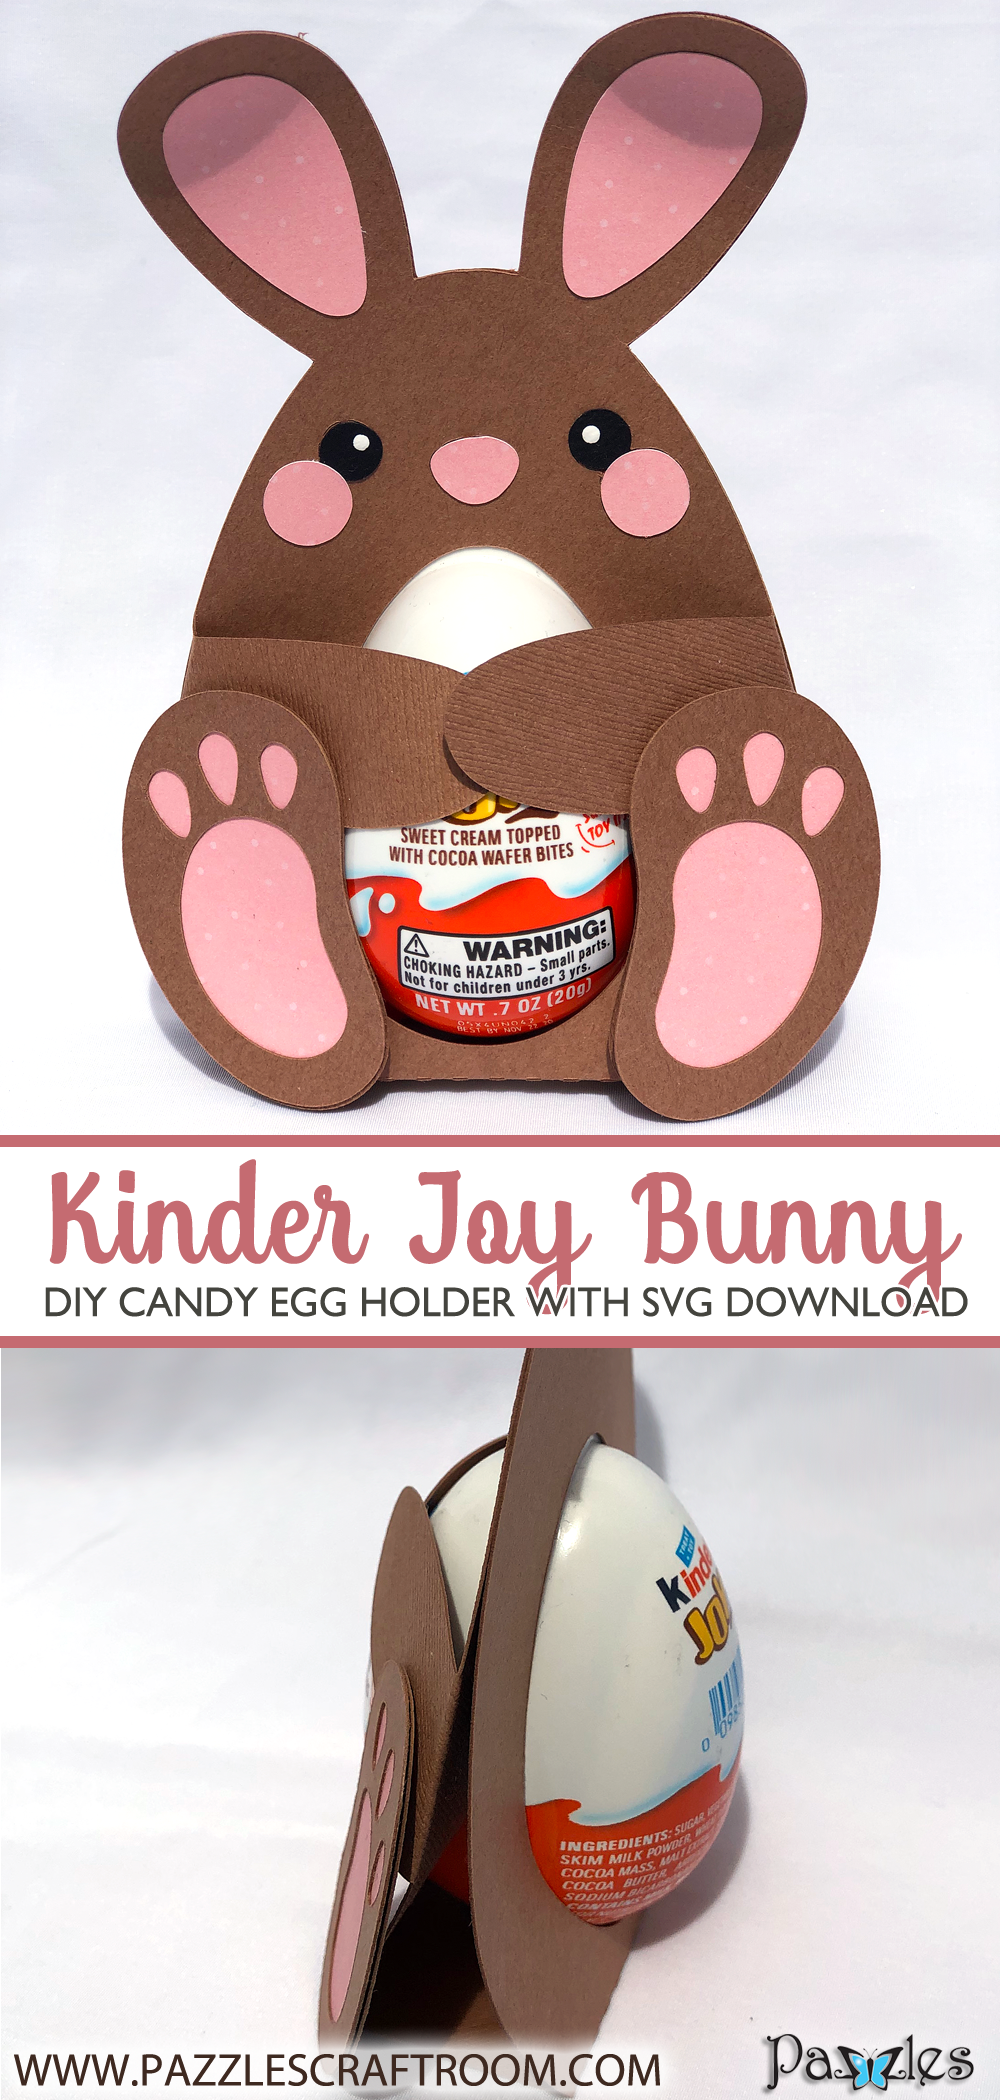 Pazzles DIY Candy Egg Bunny Holder for Kinder Joy with instant SVG download. Compatible with all major electronic cutters including Pazzles Inspiration, Cricut, and Silhouette Cameo. Design by Alma Cervantes.